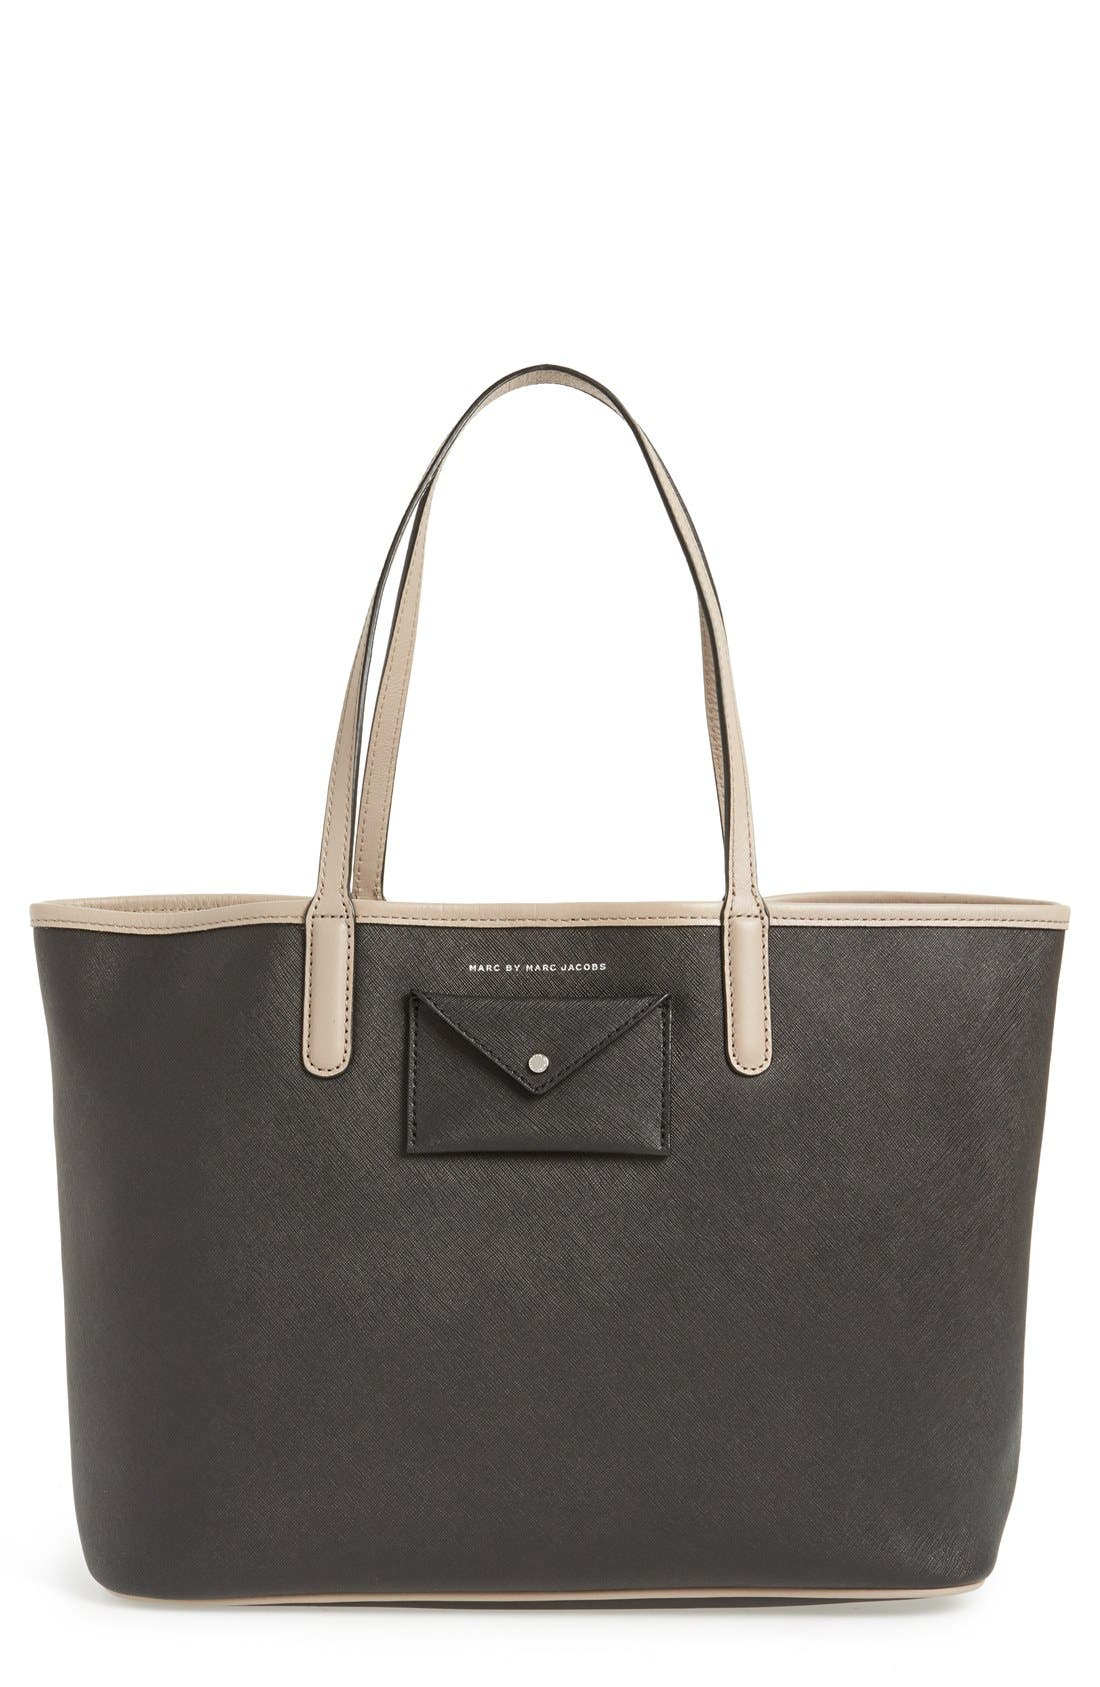 MARC BY MARC JACOBS 'Metropolitote 48' Leather Tote, Main, color, 001